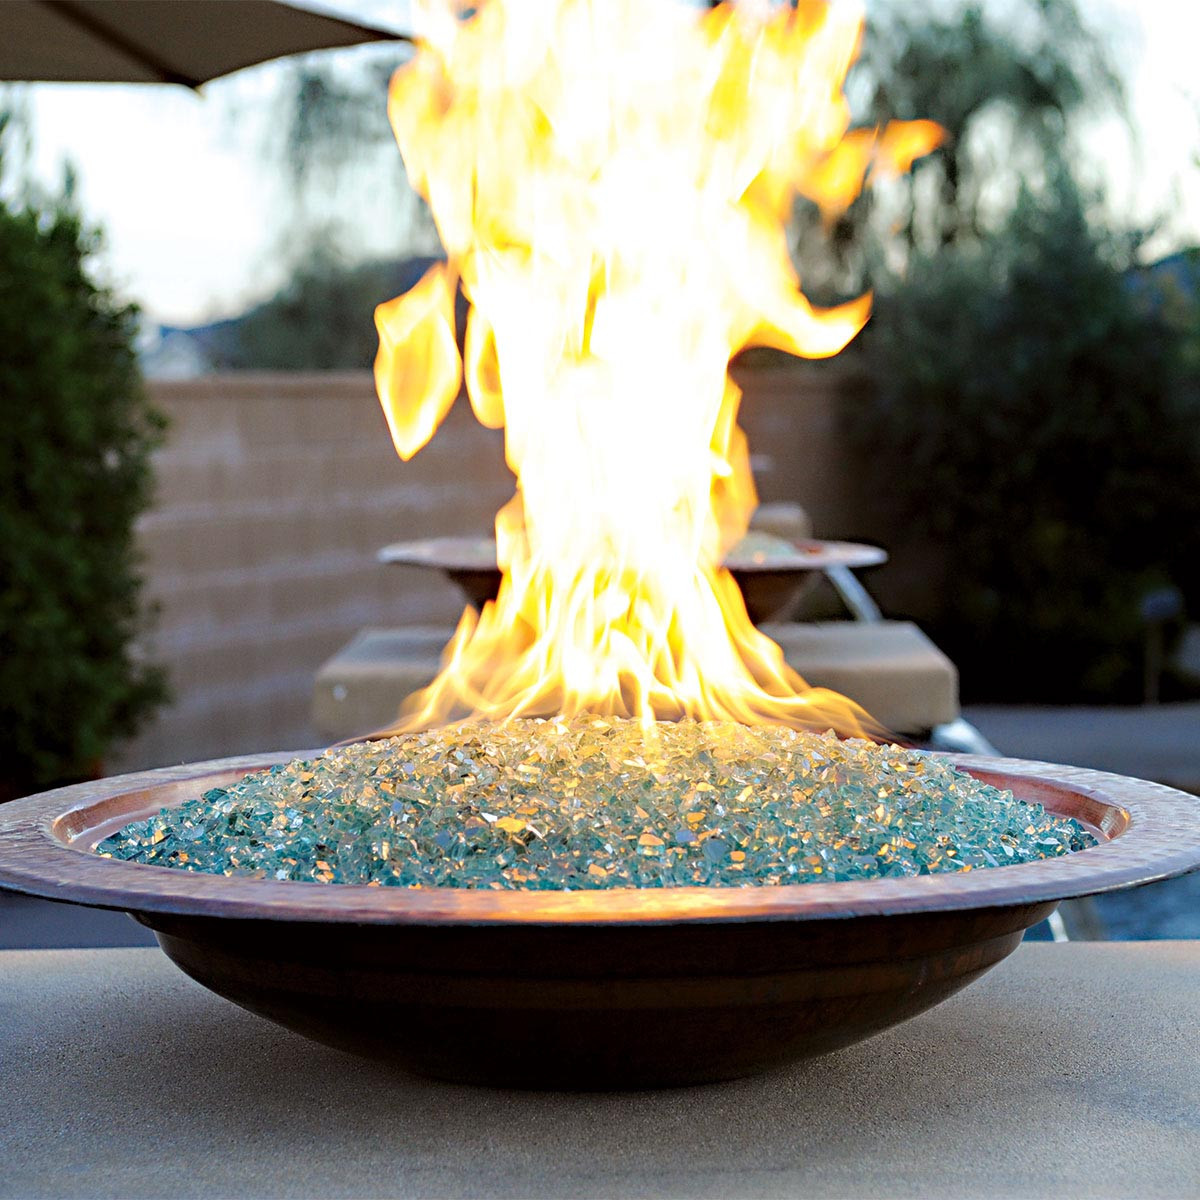 Best ideas about Table Top Fire Pit . Save or Pin Tabletop Fire Pit Indoor Now.